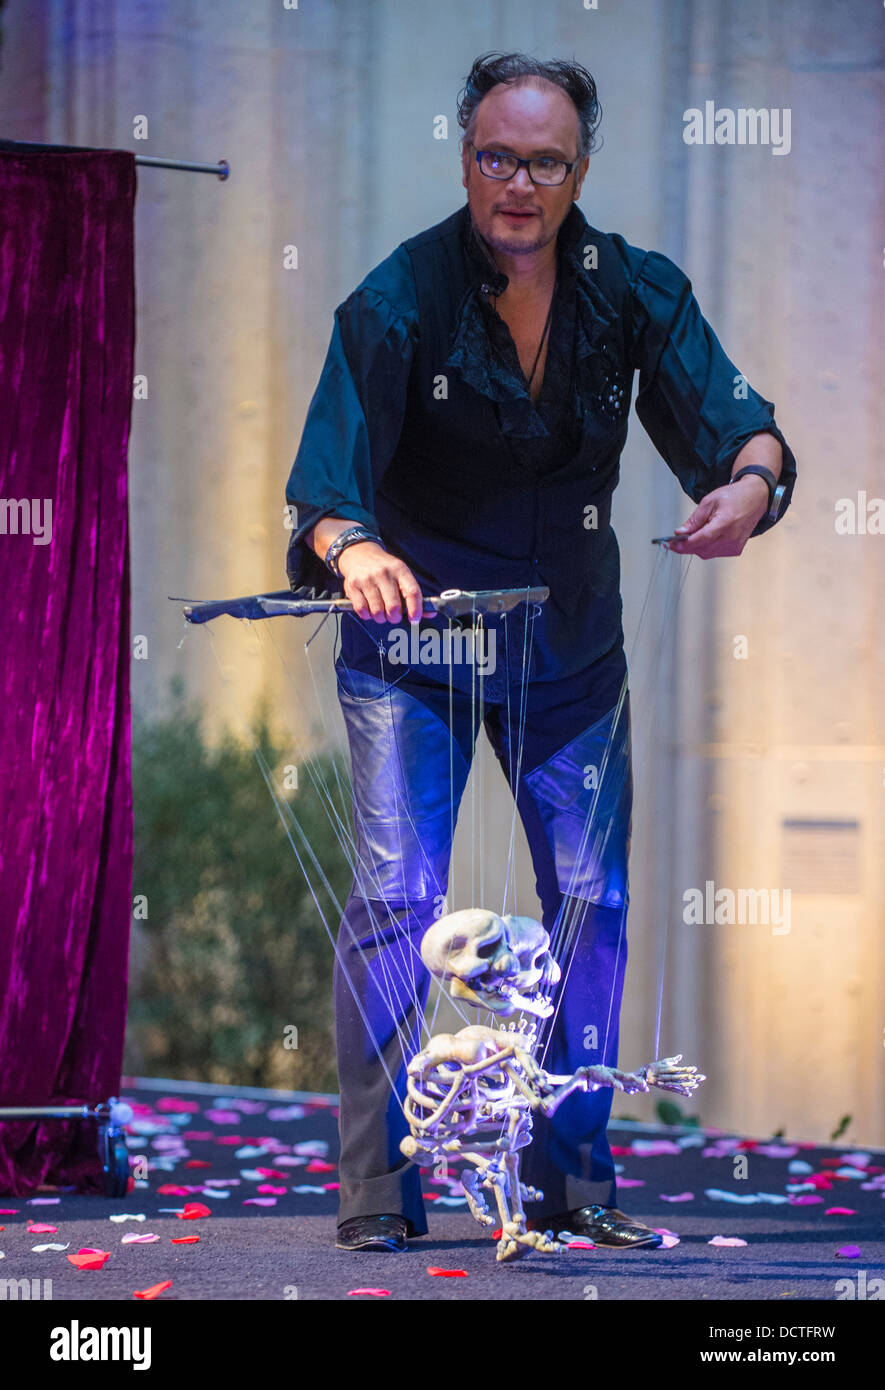 Puppeteer Perform at the Carnival experience festival in the Venetian Hotel in Las Vegas - Stock Image